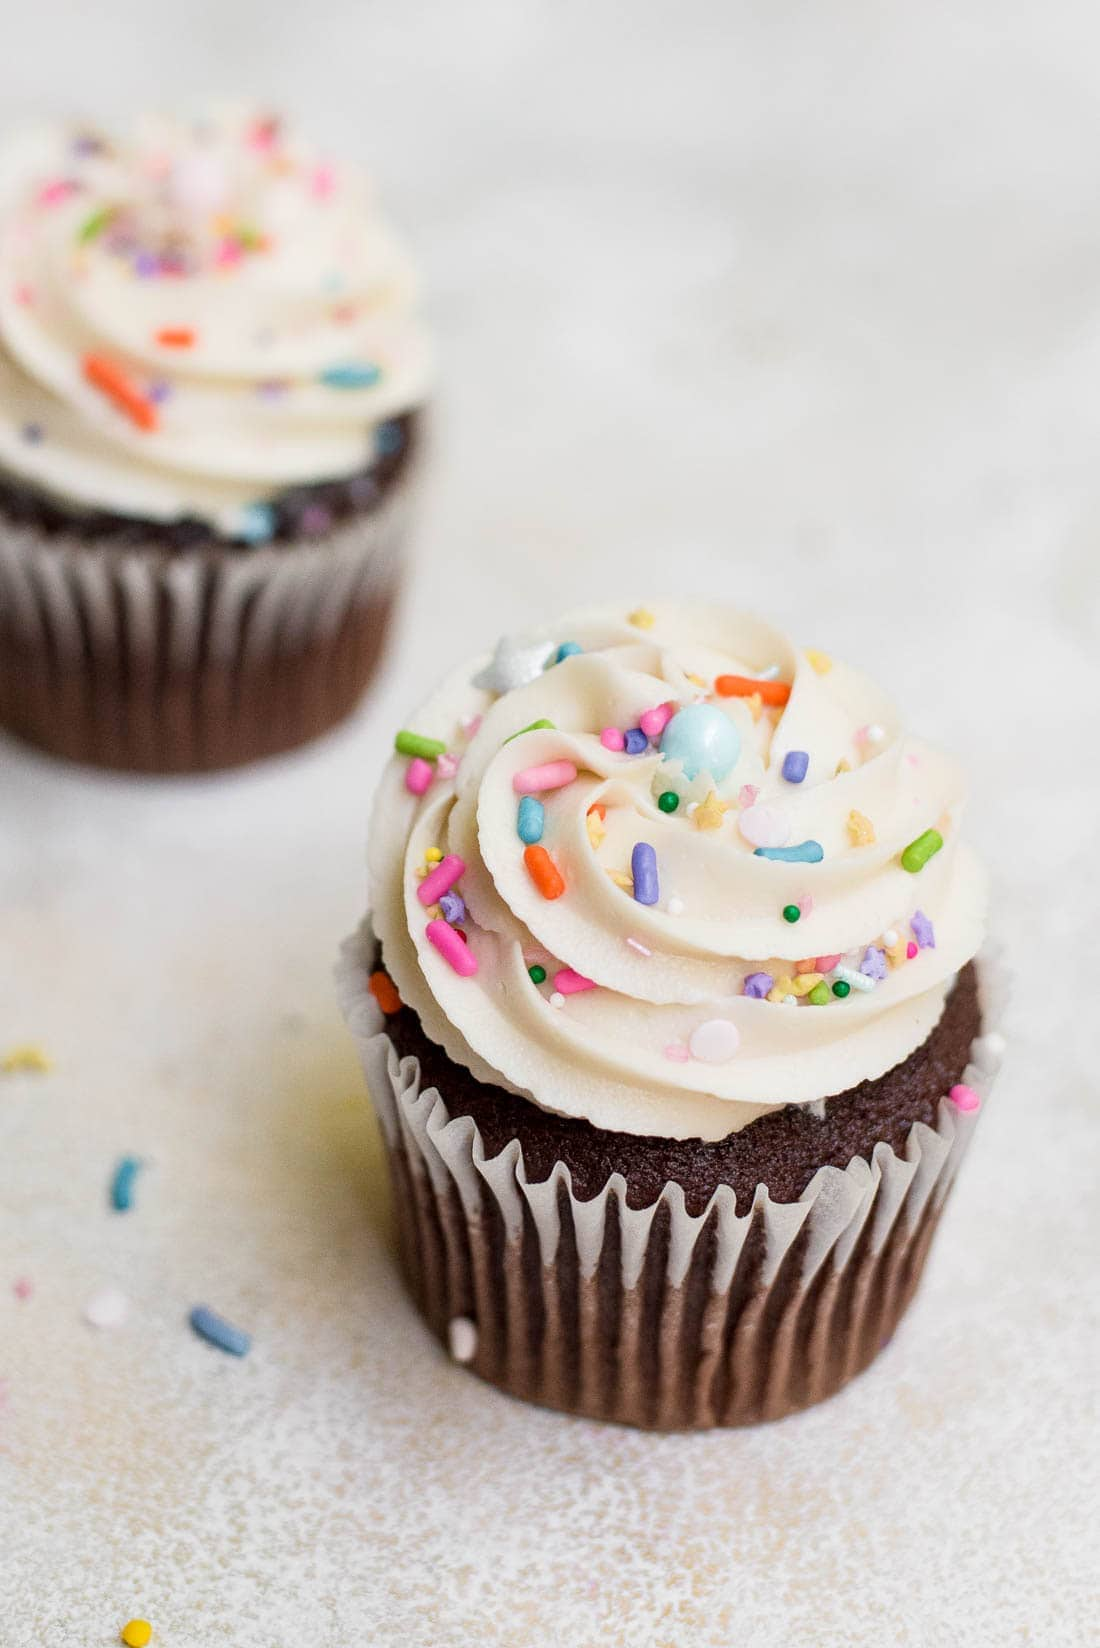 close up of cupcakes with vanilla buttercream frosting and sprinkles